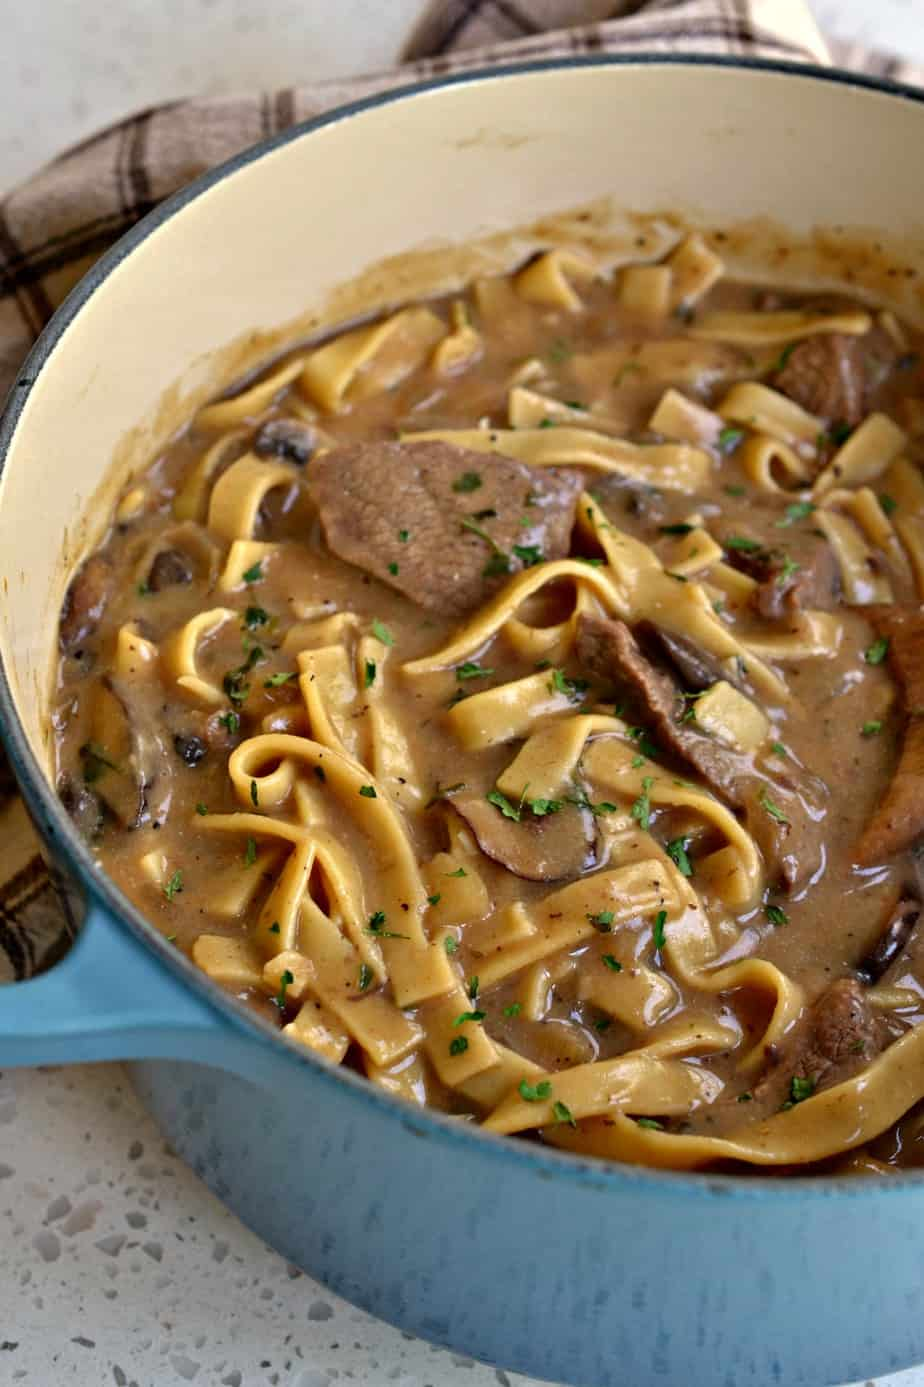 Beef Stroganoff combines tender bites of steak with onions, garlic, mushrooms and egg noodles in a rich creamy beef sauce.